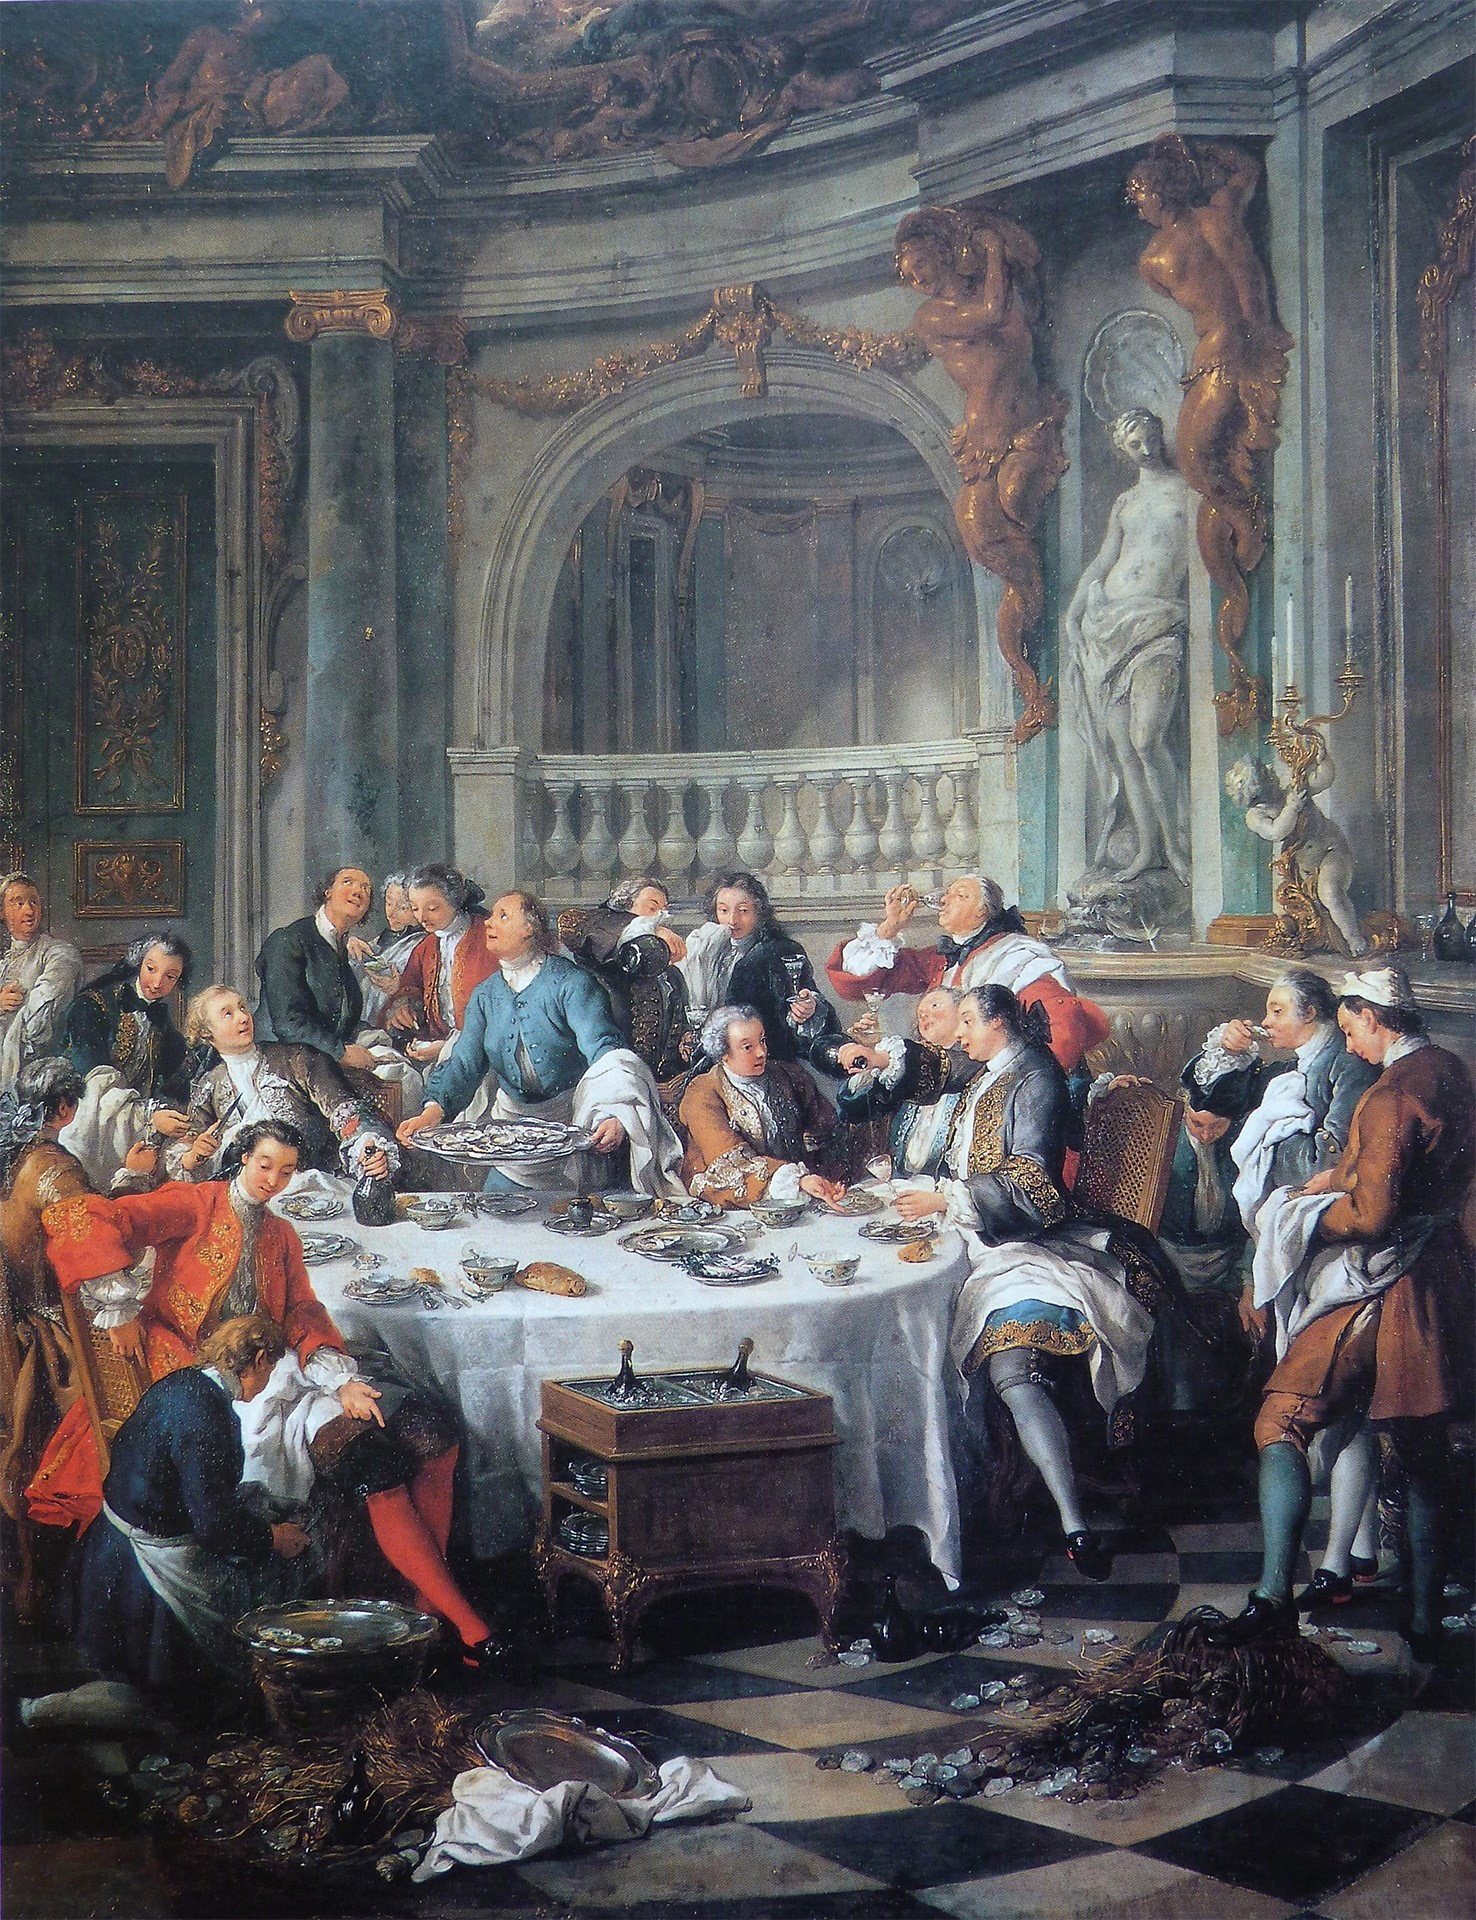 Rienzi champagne dinner painting